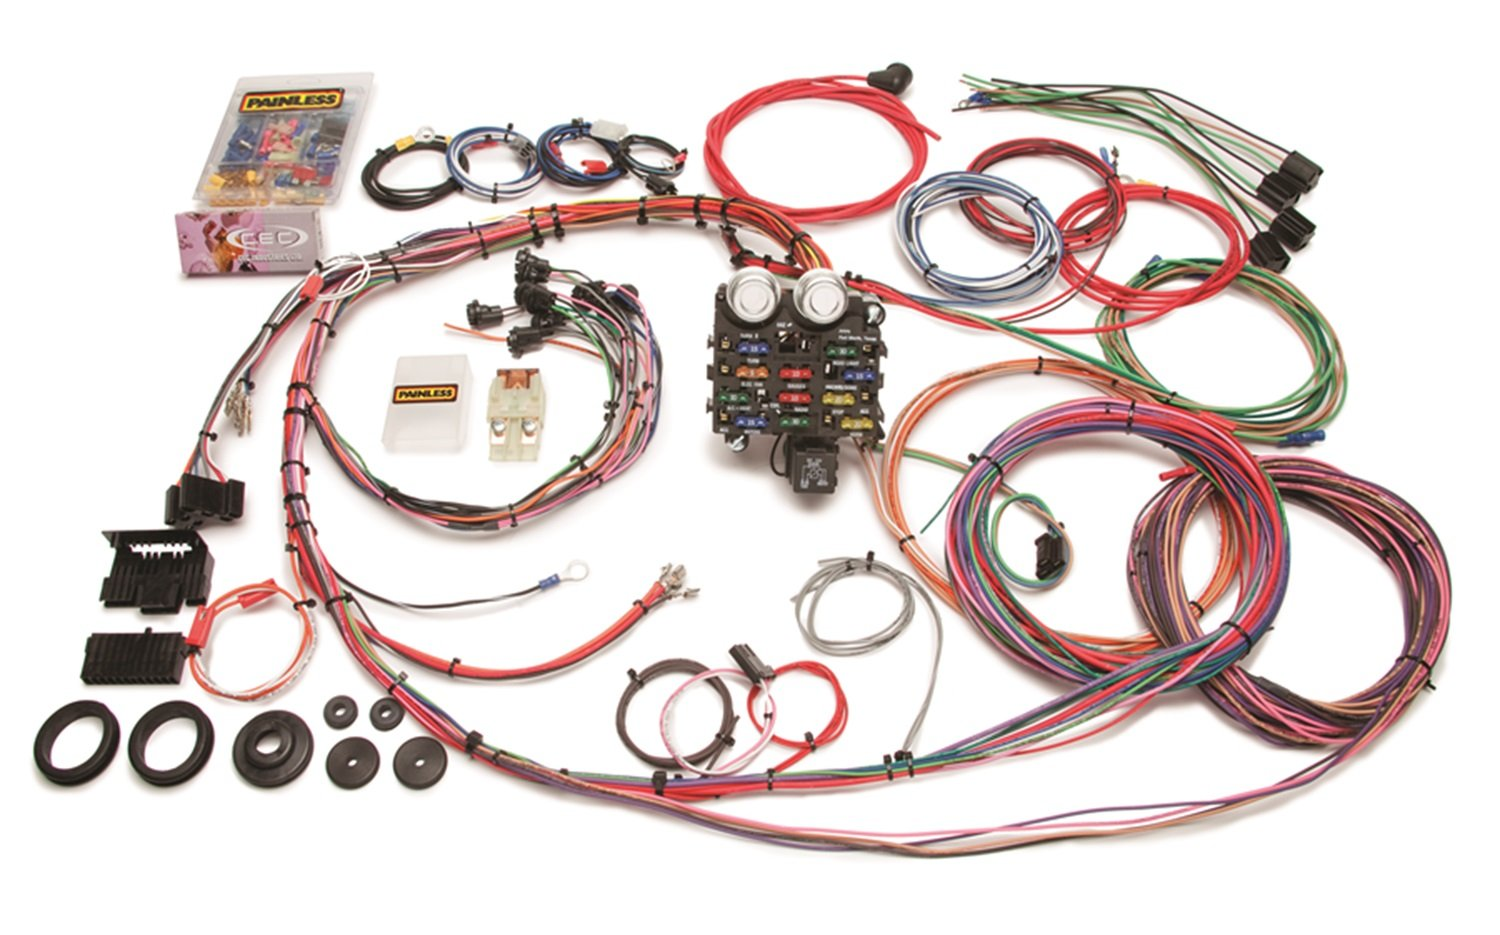 amazon com painless 10112 12 circuit pickup harness automotive rh amazon com painless wiring harness duramax painless wiring harness fj40